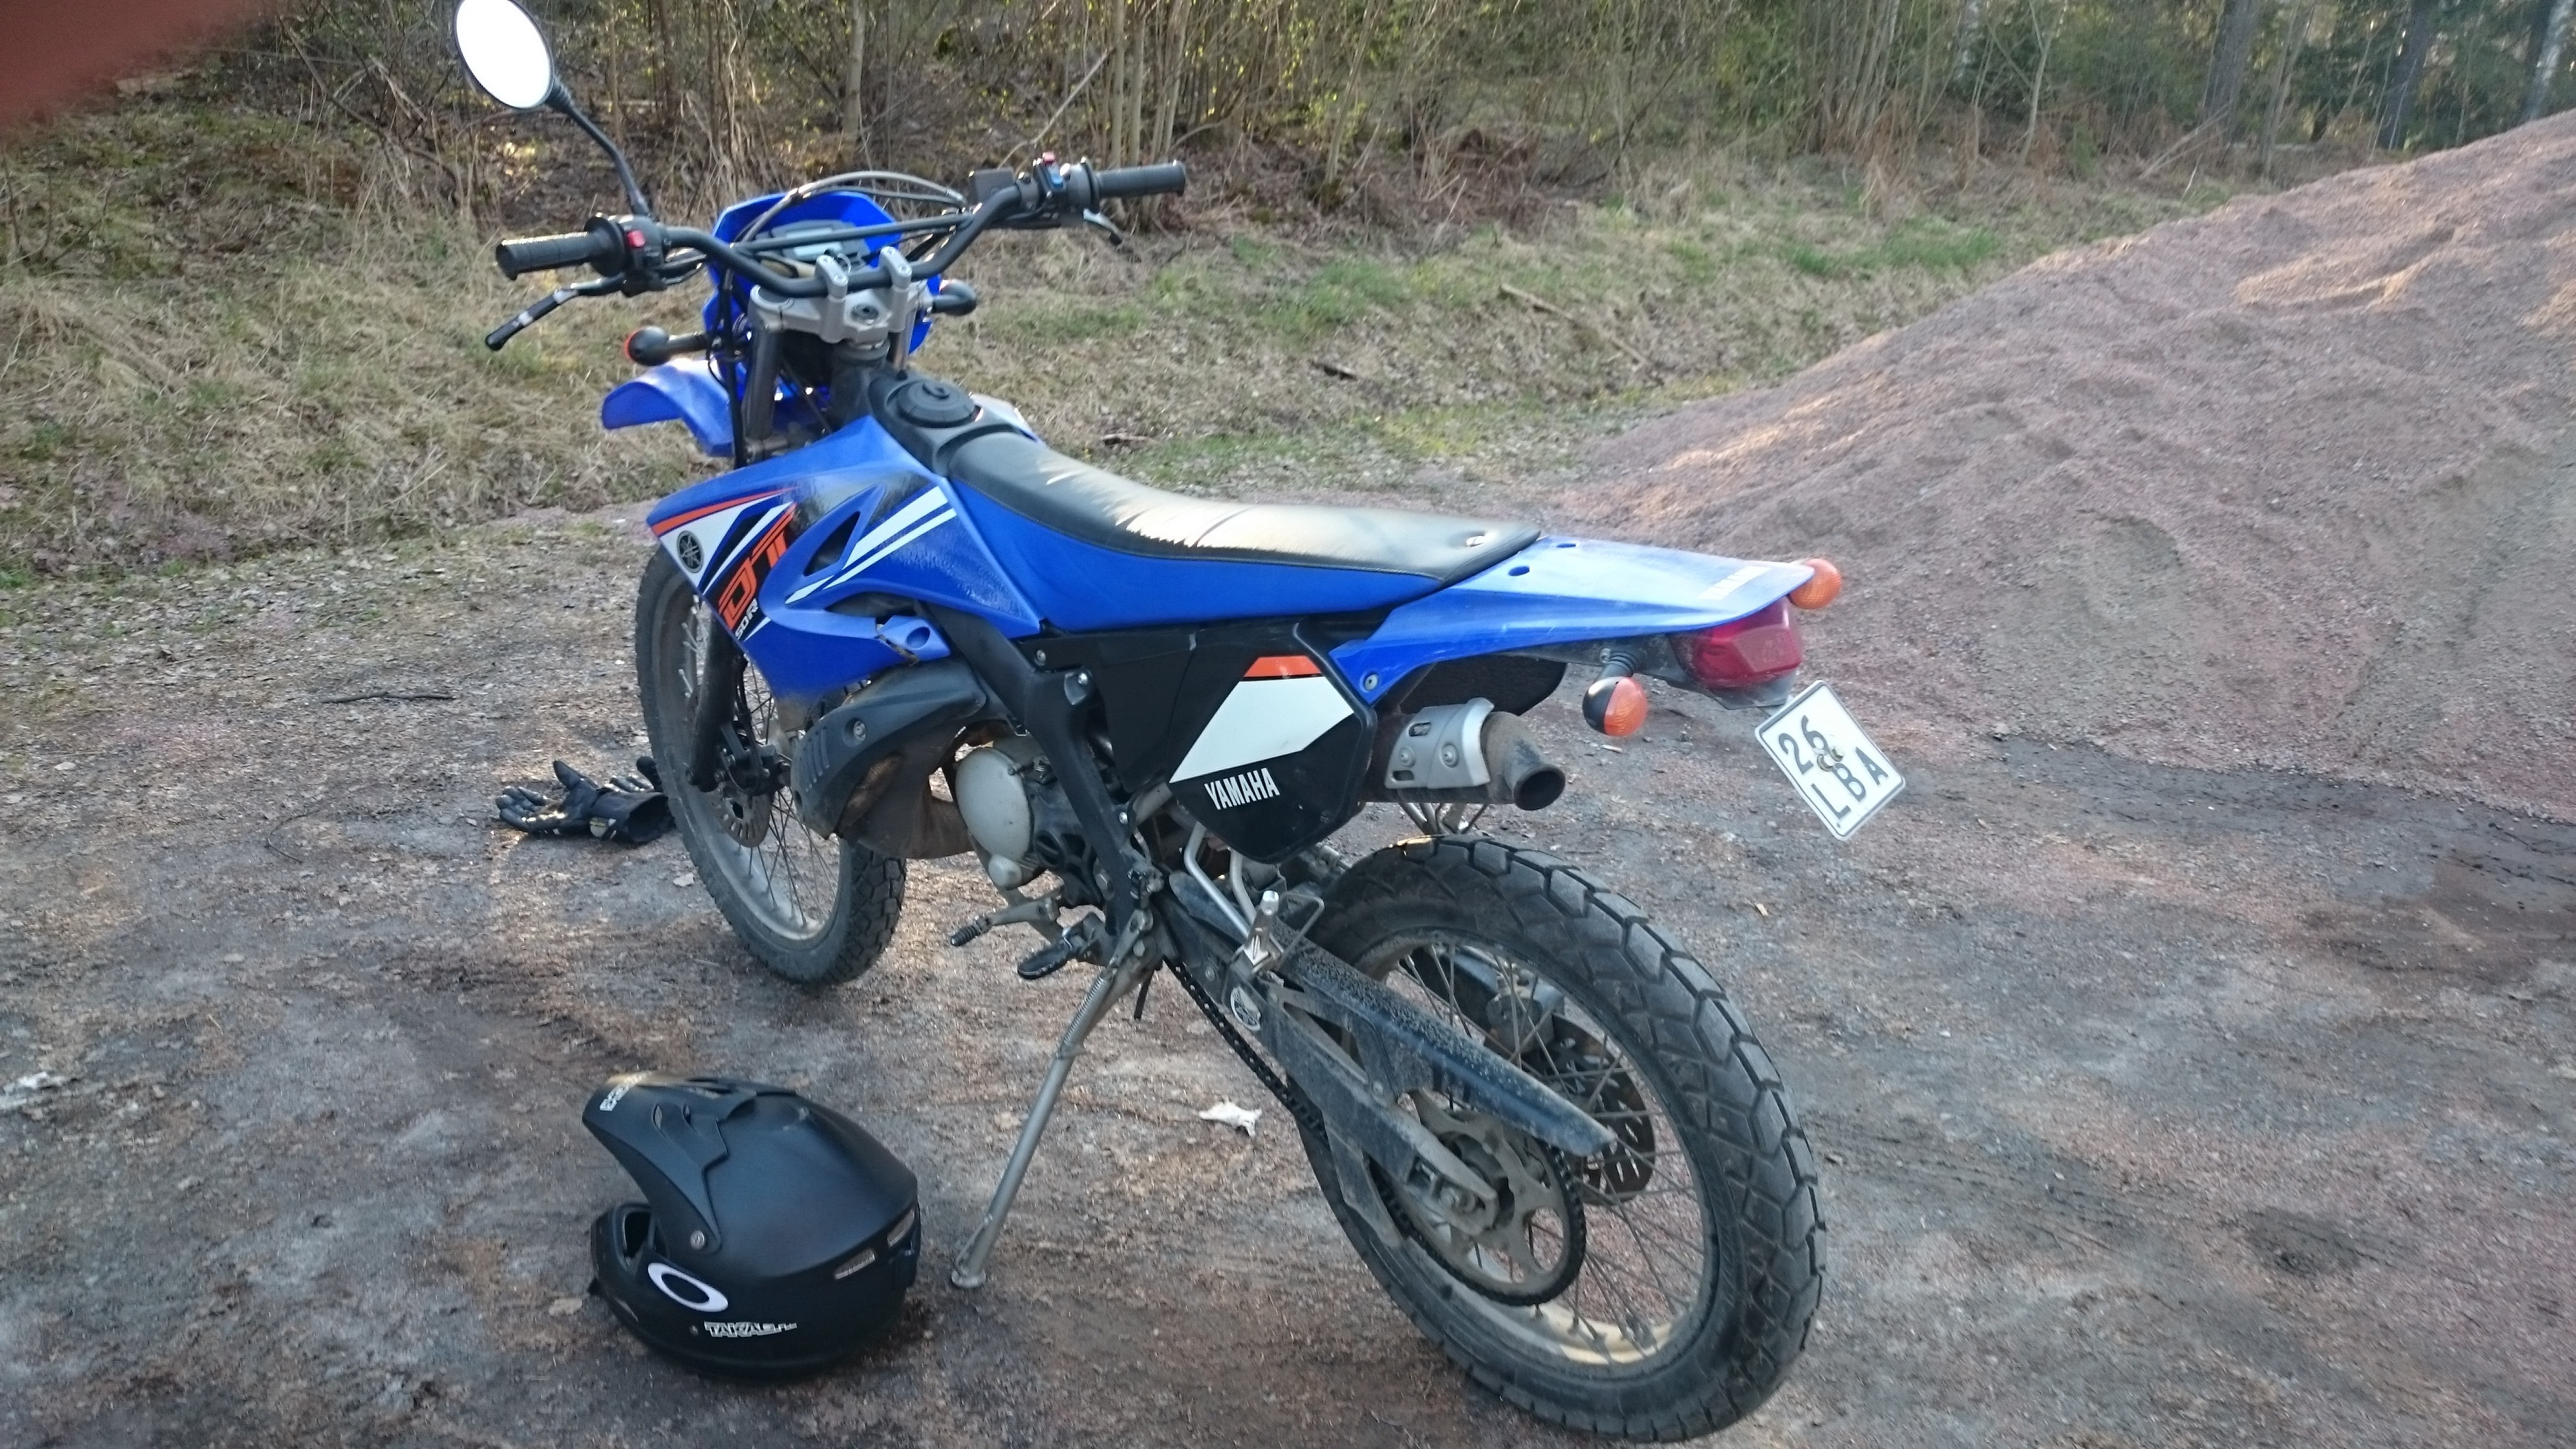 2011 Yamaha Dt 50 R Photos  Informations  Articles